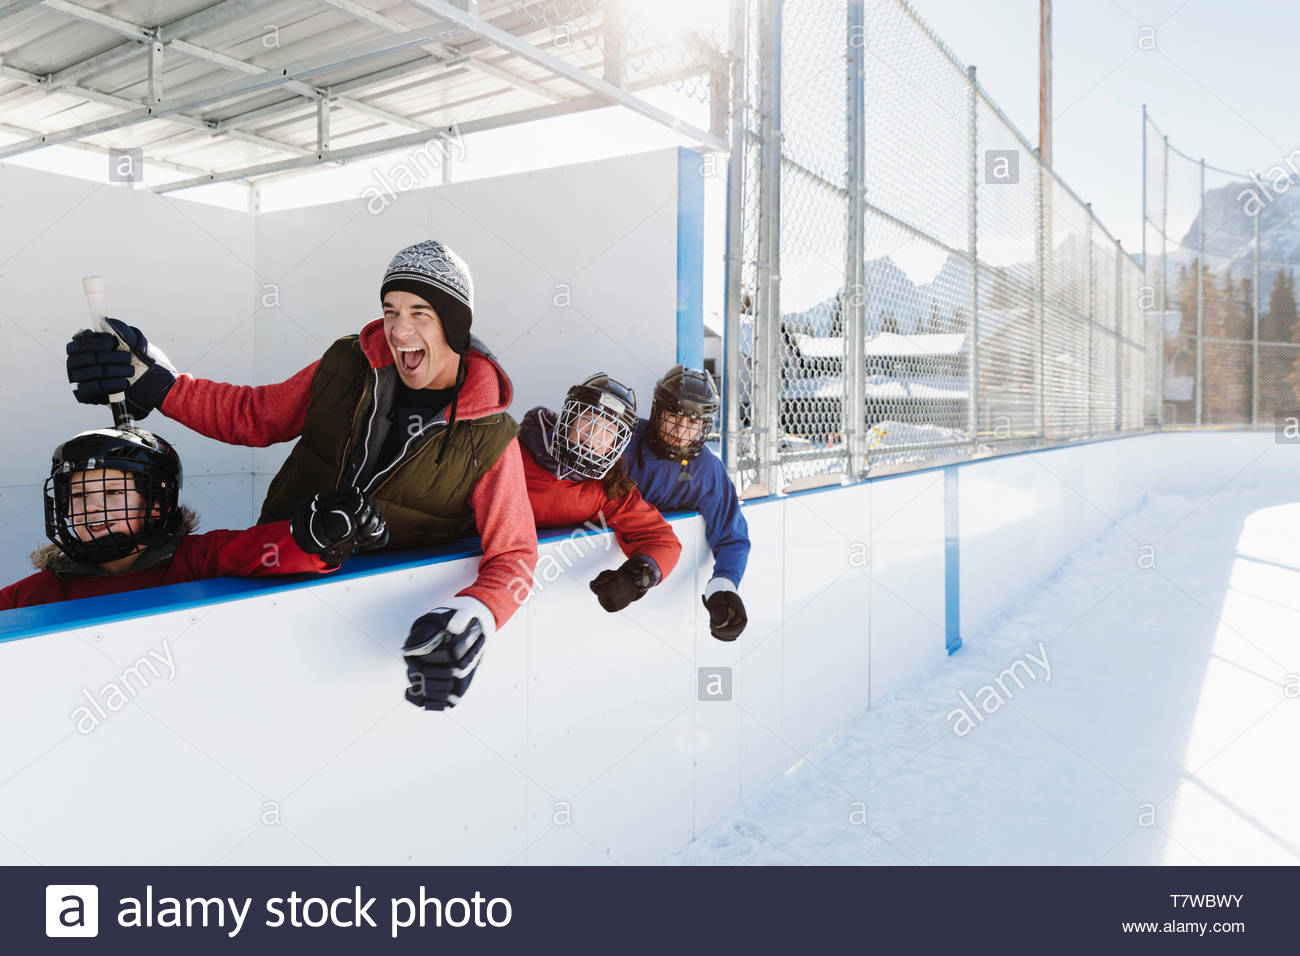 Happy family cheering, watching outdoor ice hockey from sideline bench - Stock Image